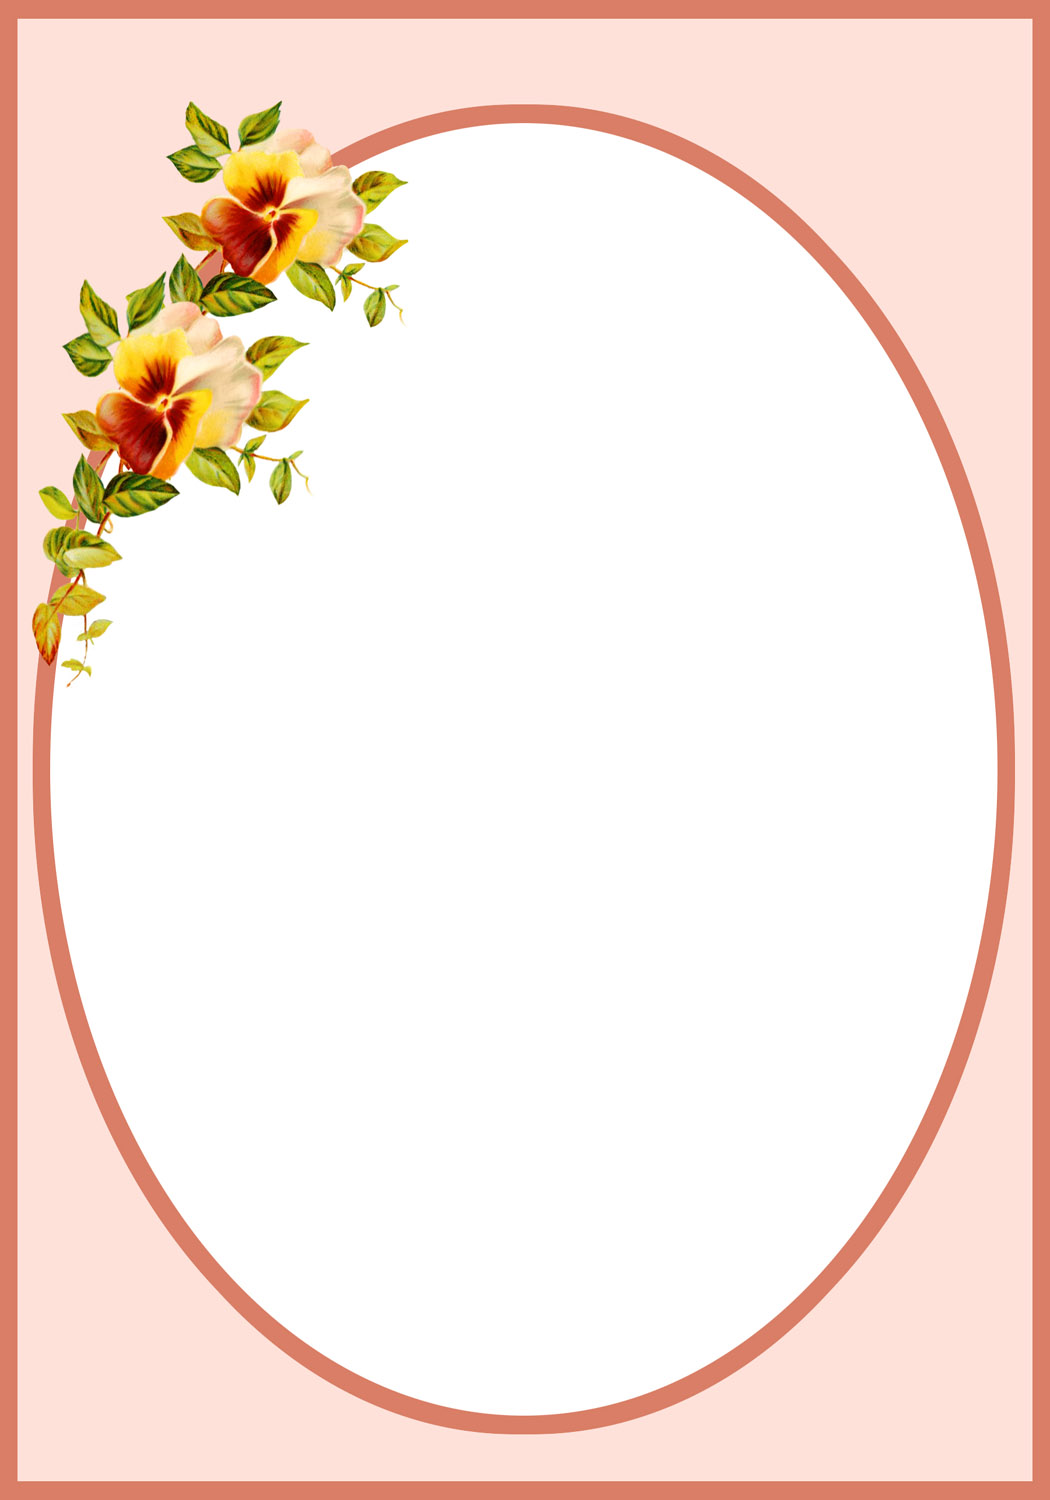 free border templates with pansies